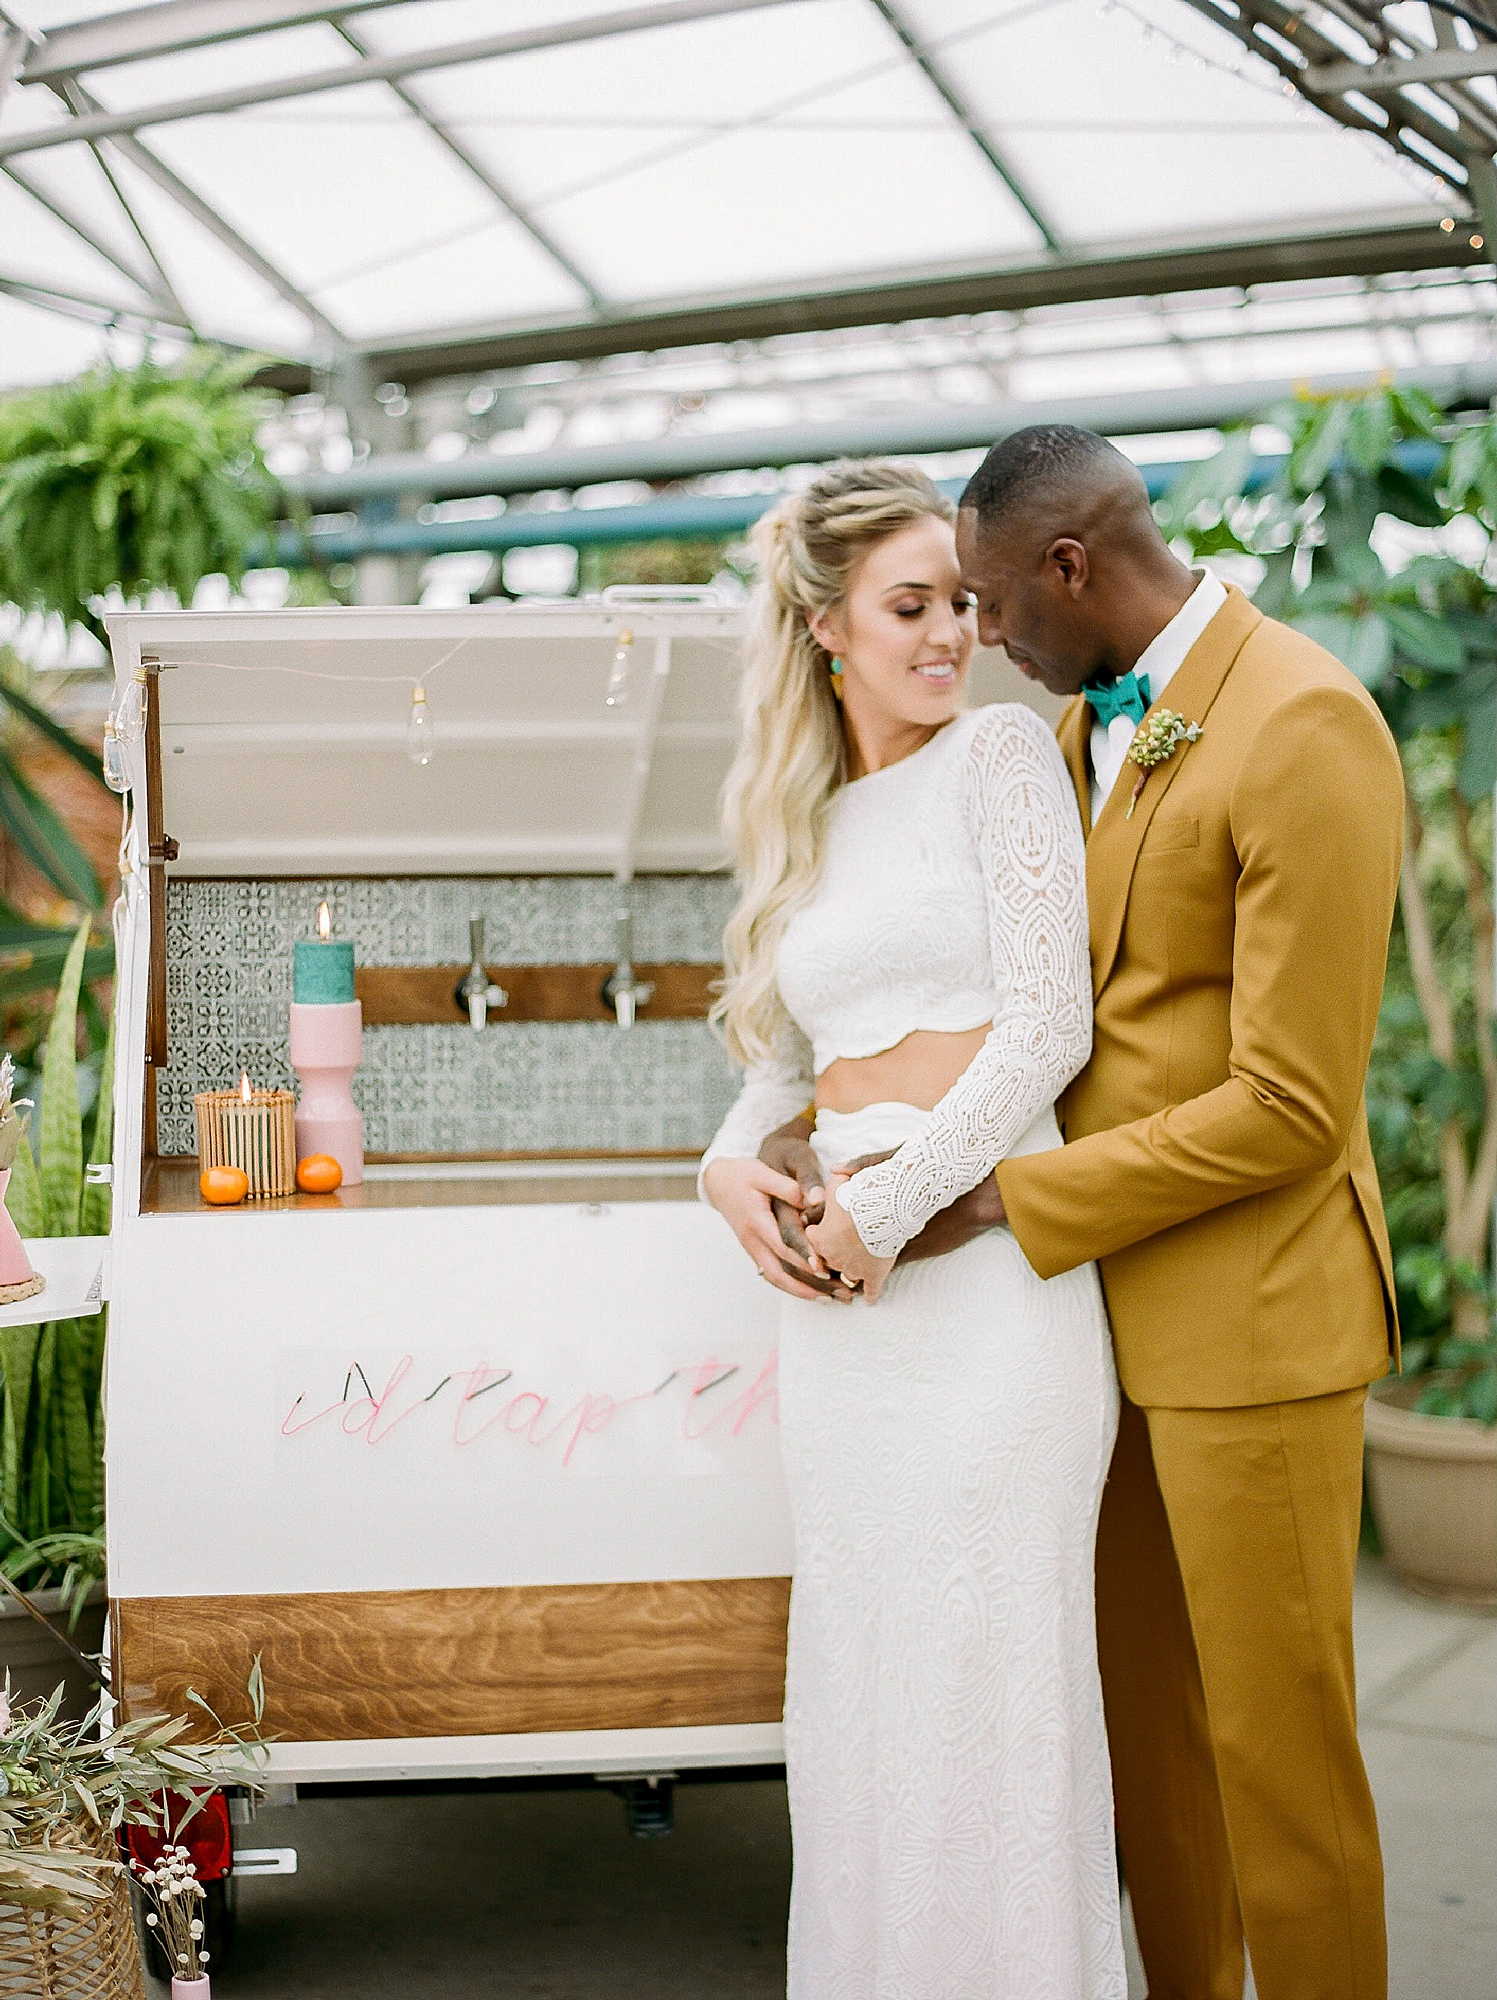 Colorful and Vibrant Wedding Photography at Fairmount Horticultural Center by Magdalena Studios 0013